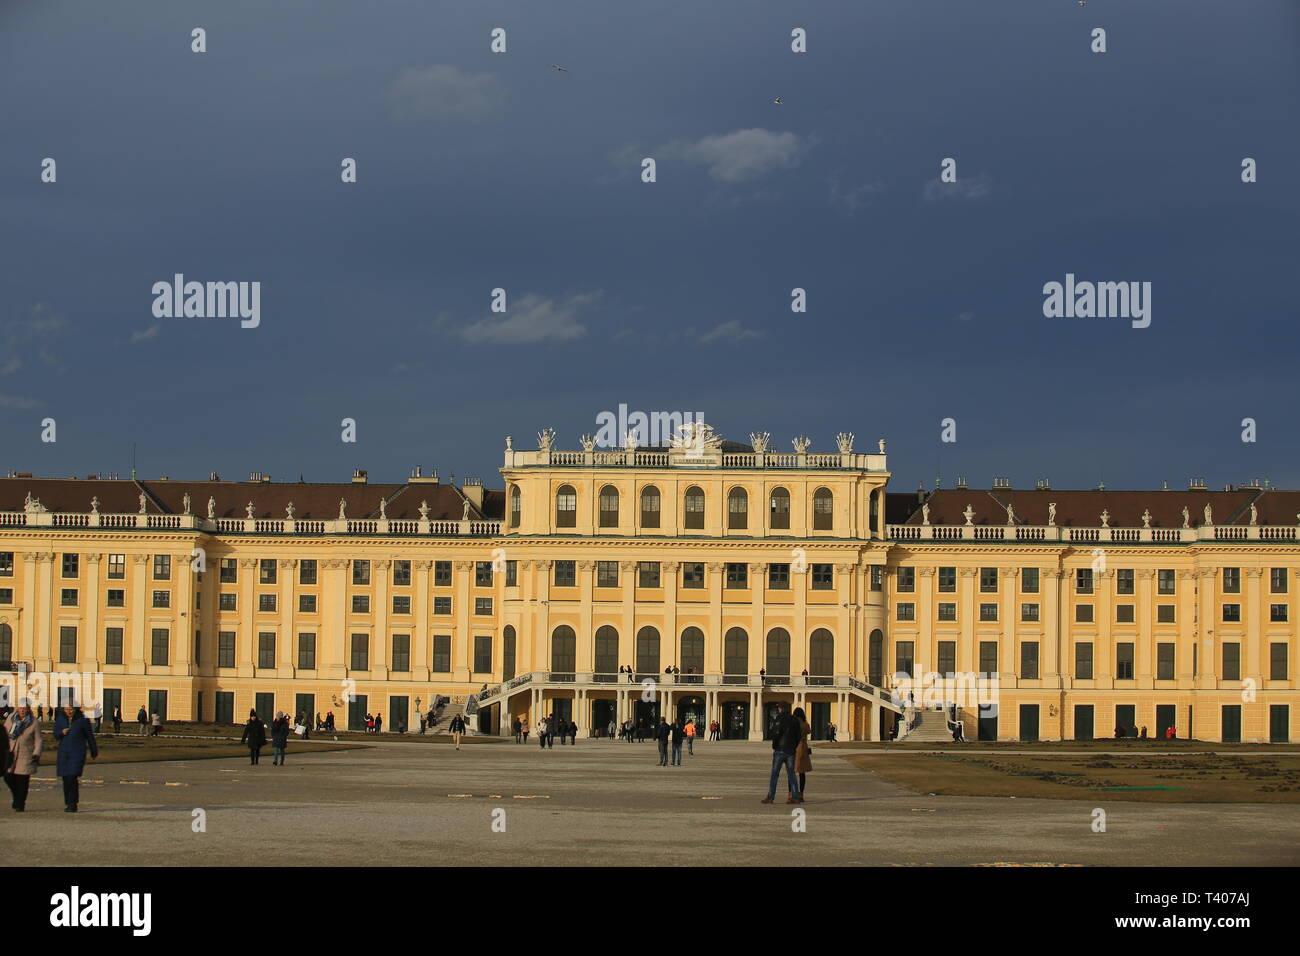 Schonbrunn Palace was the main summer residence of the Habsburg rulers, located in Hietzing - Stock Image